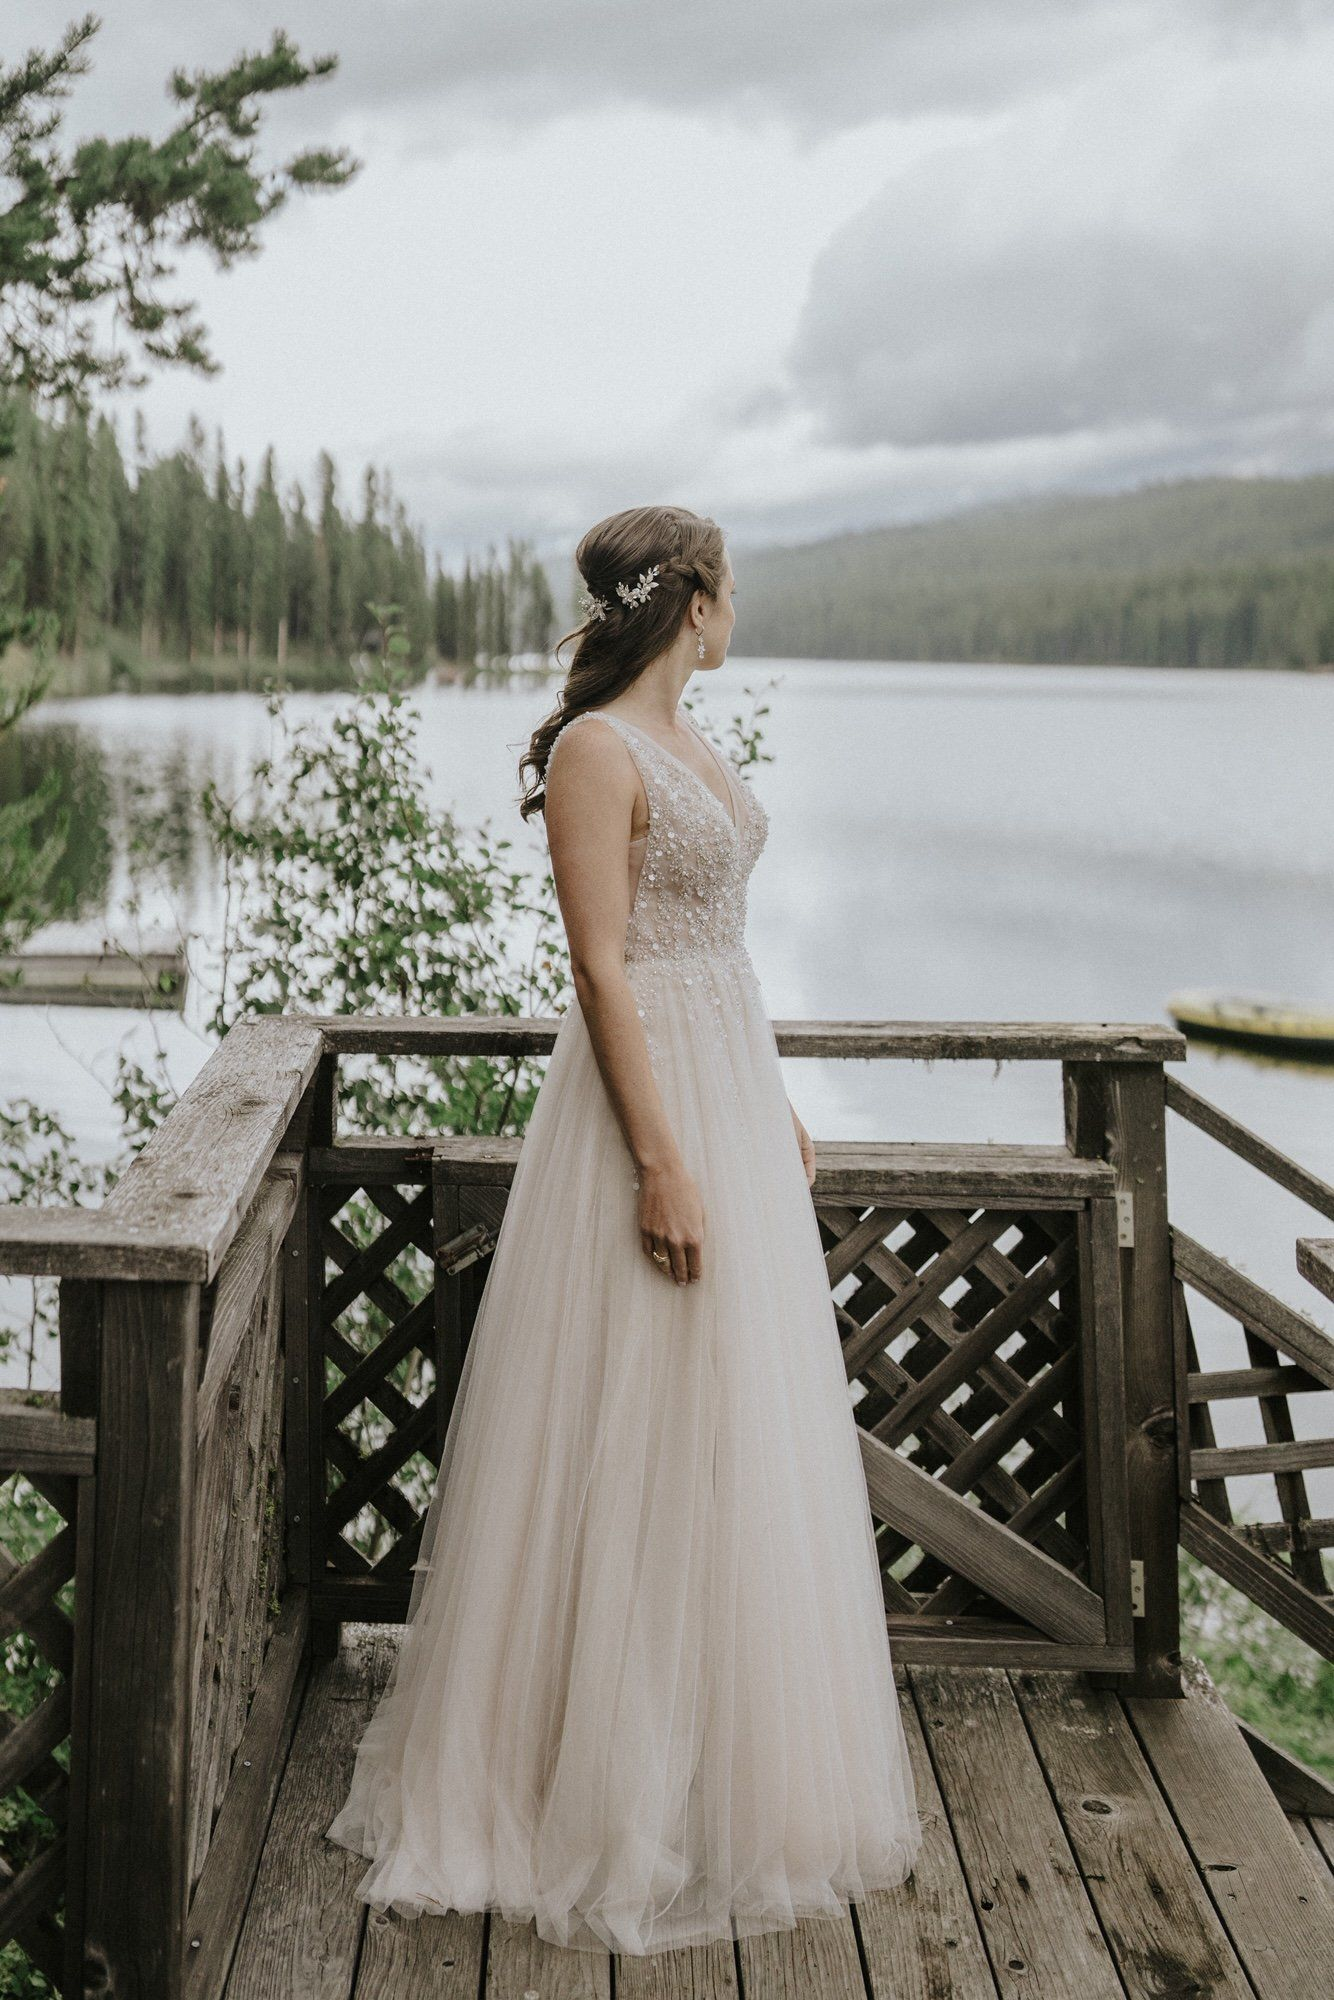 Bhldn Written In The Stars Bhldn Wedding Dress Wedding Dresses Destination Wedding Dress